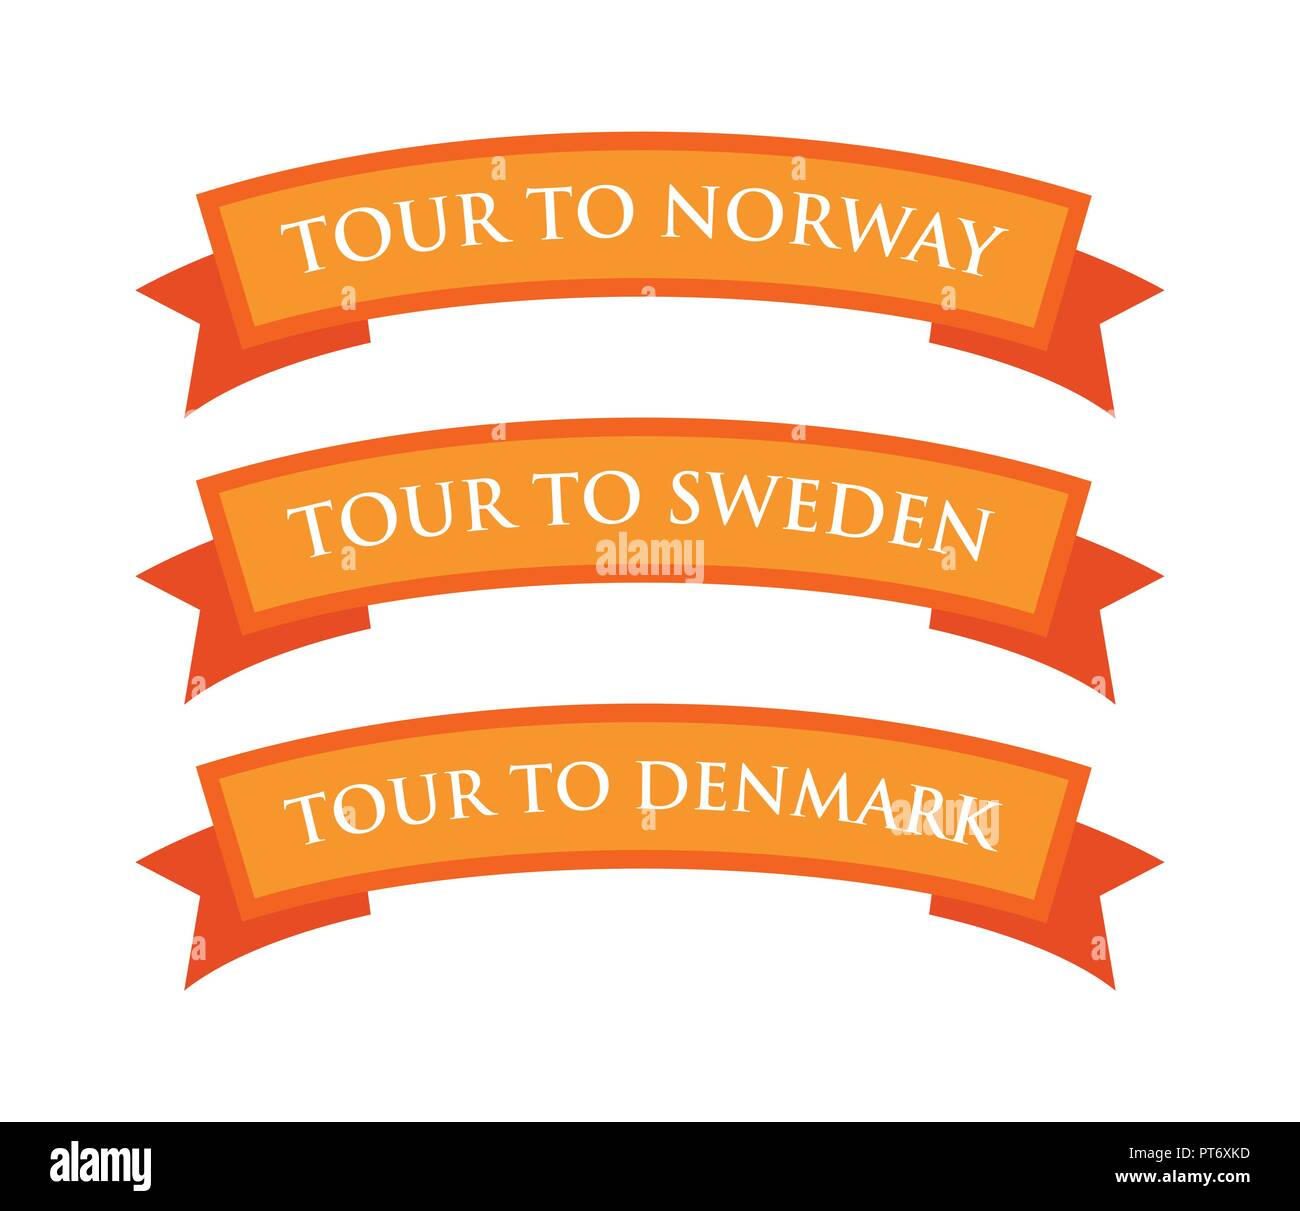 Tour to Norway, Sweden and Denmark - Stock Vector